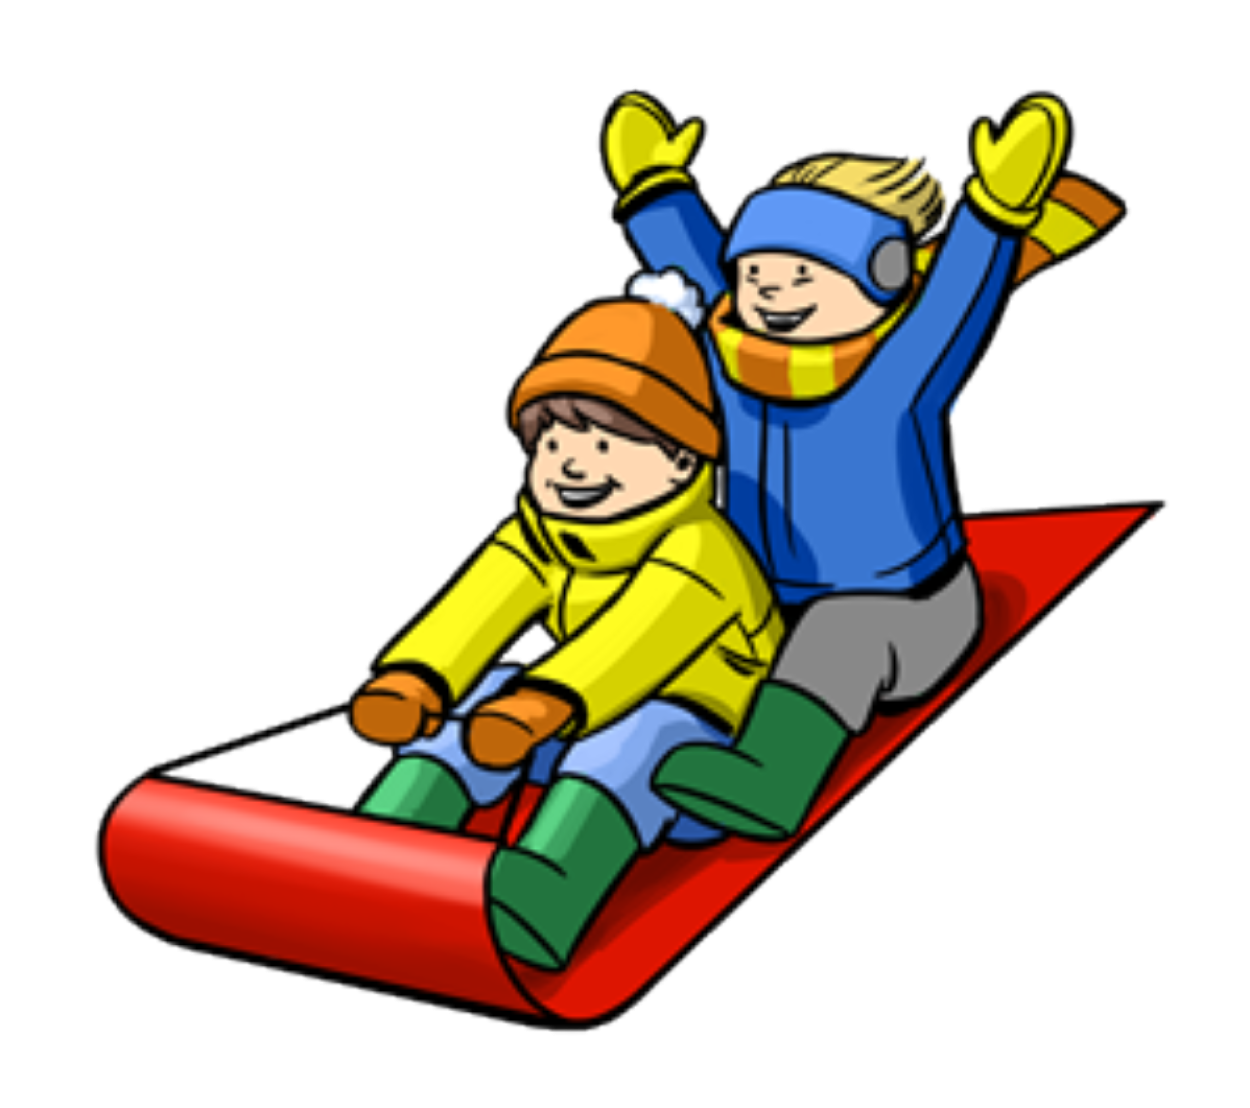 clip art royalty free library Breathe clipart recreation. Winter obstacle course kidding.